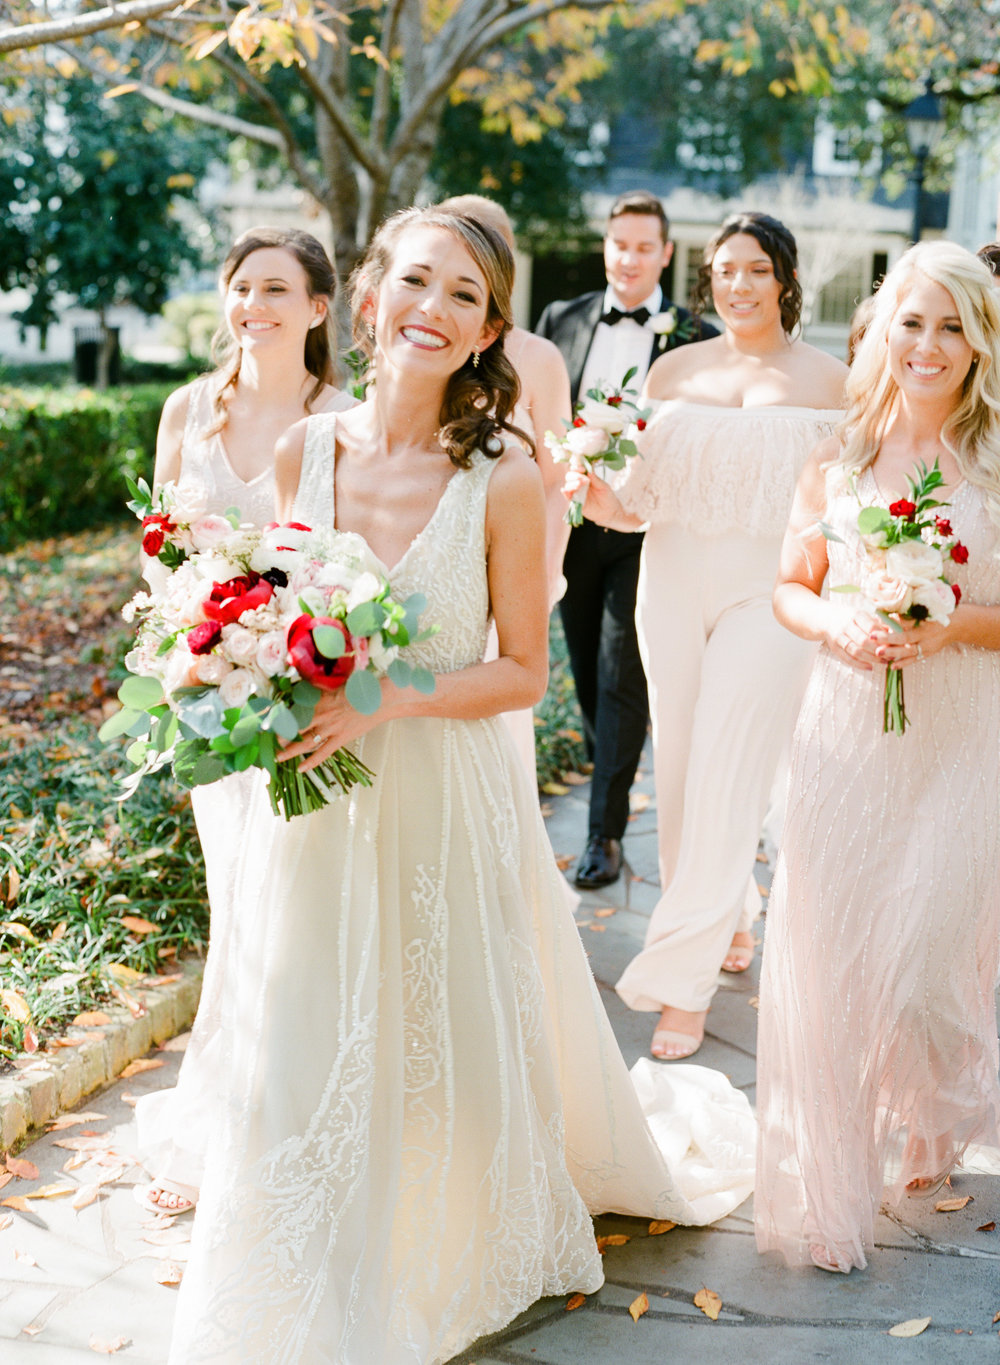 ivory-and-beau-bridal-boutique-savannah-wedding-planner-the-happy-bloom-photography-bethesda-academy-wedding-morris-center-wedding-savannah-wedding-8.jpg